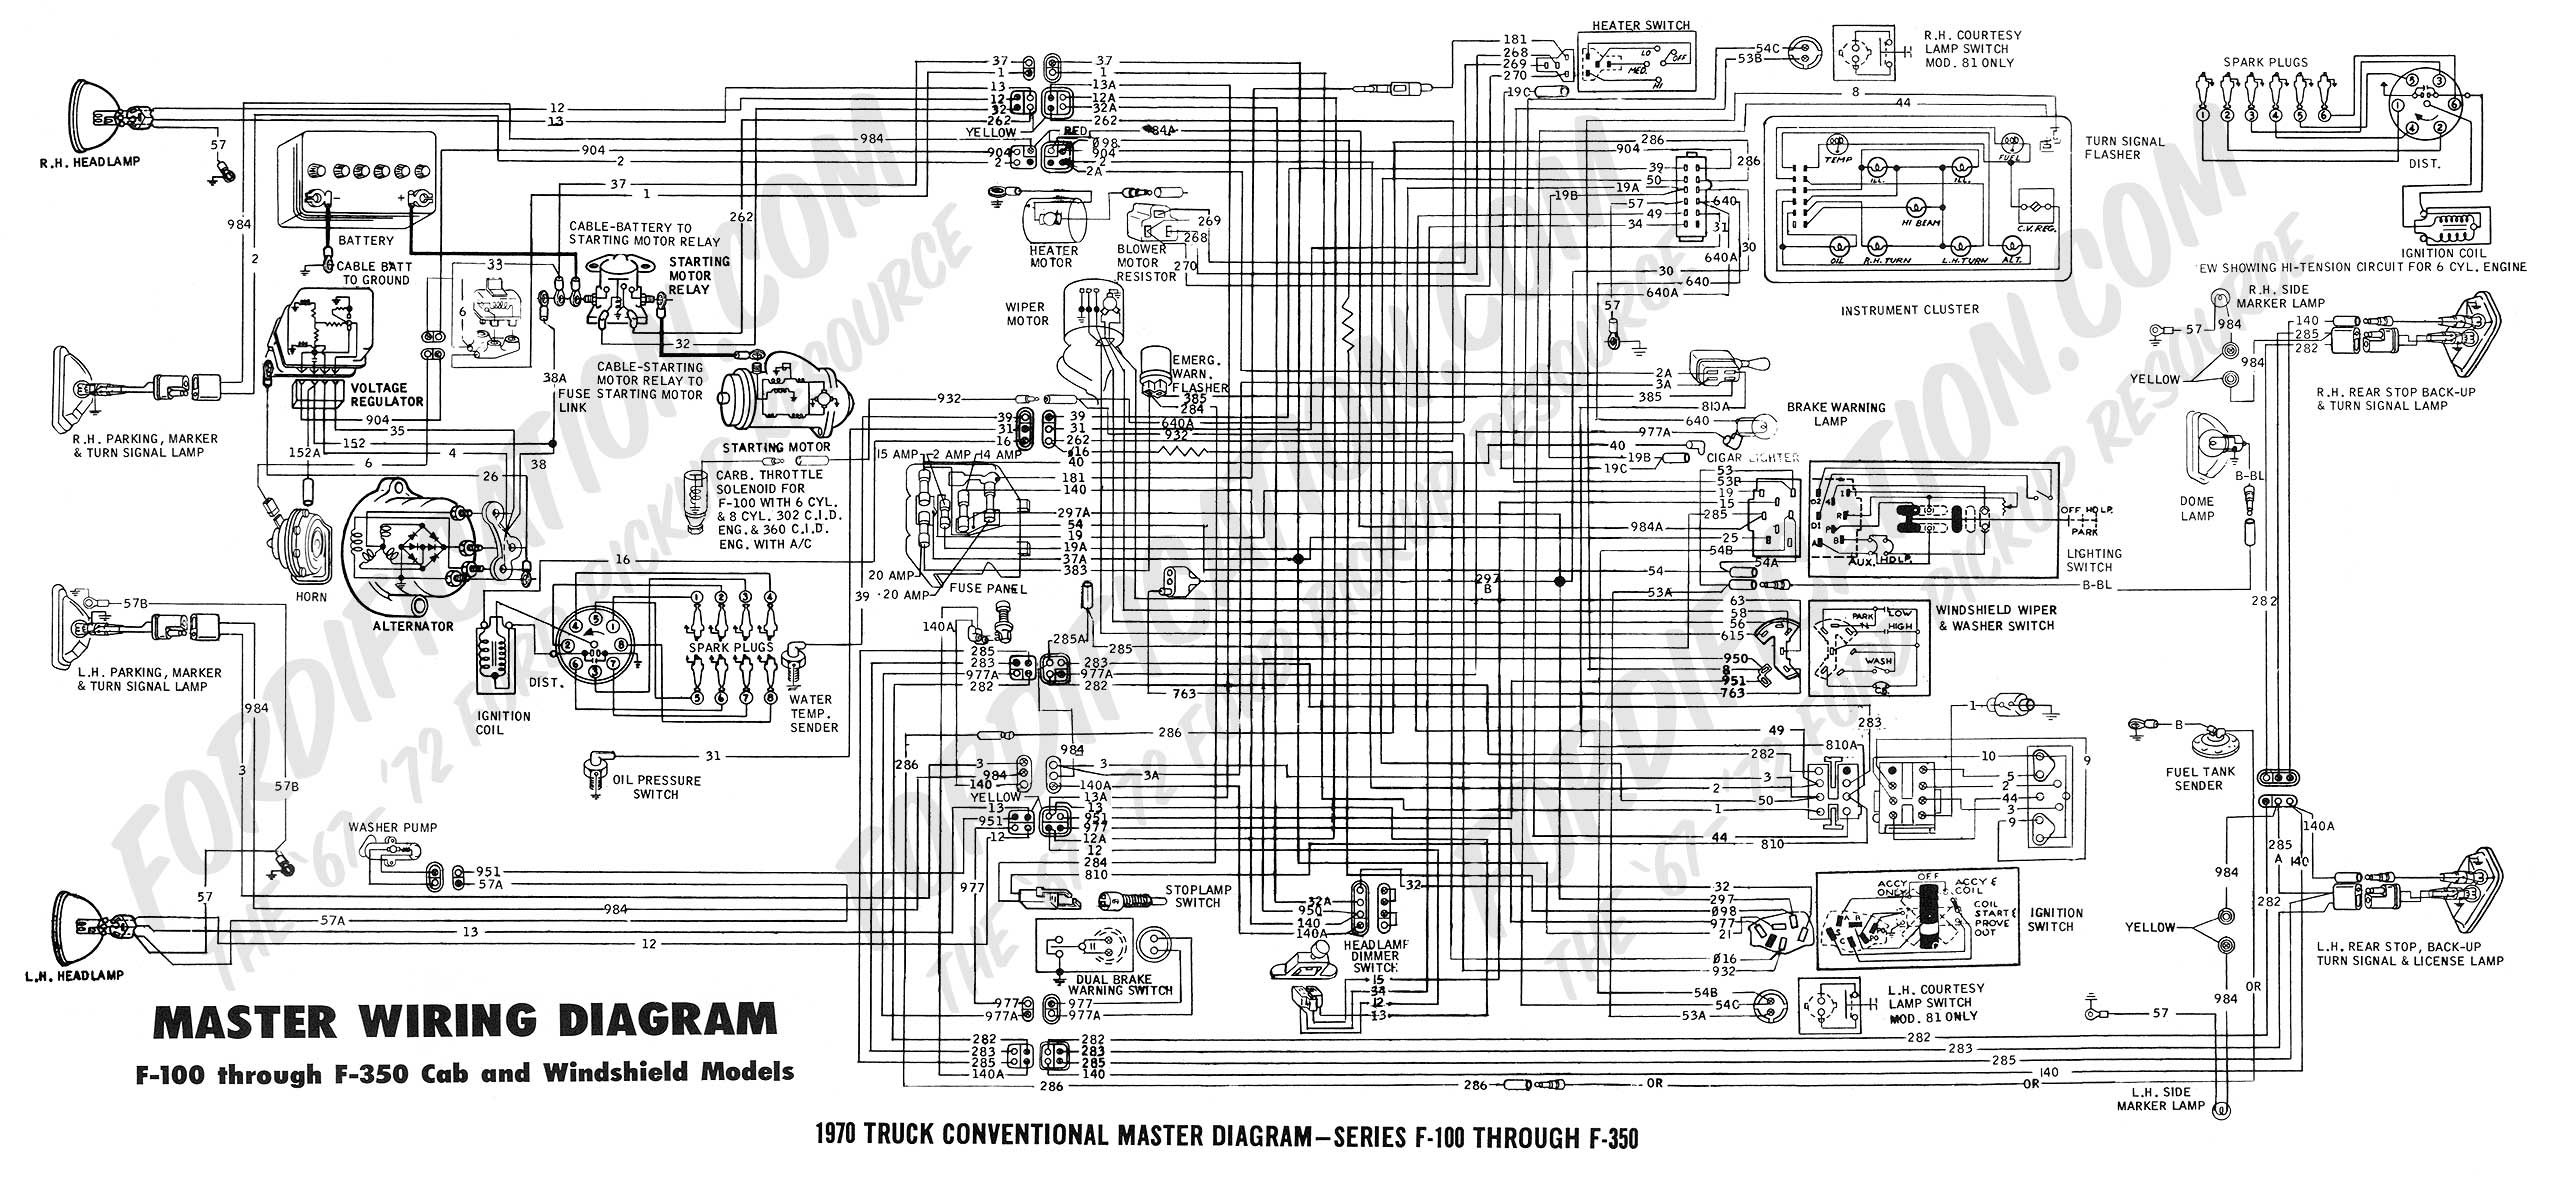 wiring diagram 70_master wiring diagram for 2007 freightliner columbia ireleast Wiring Harness Diagram at pacquiaovsvargaslive.co